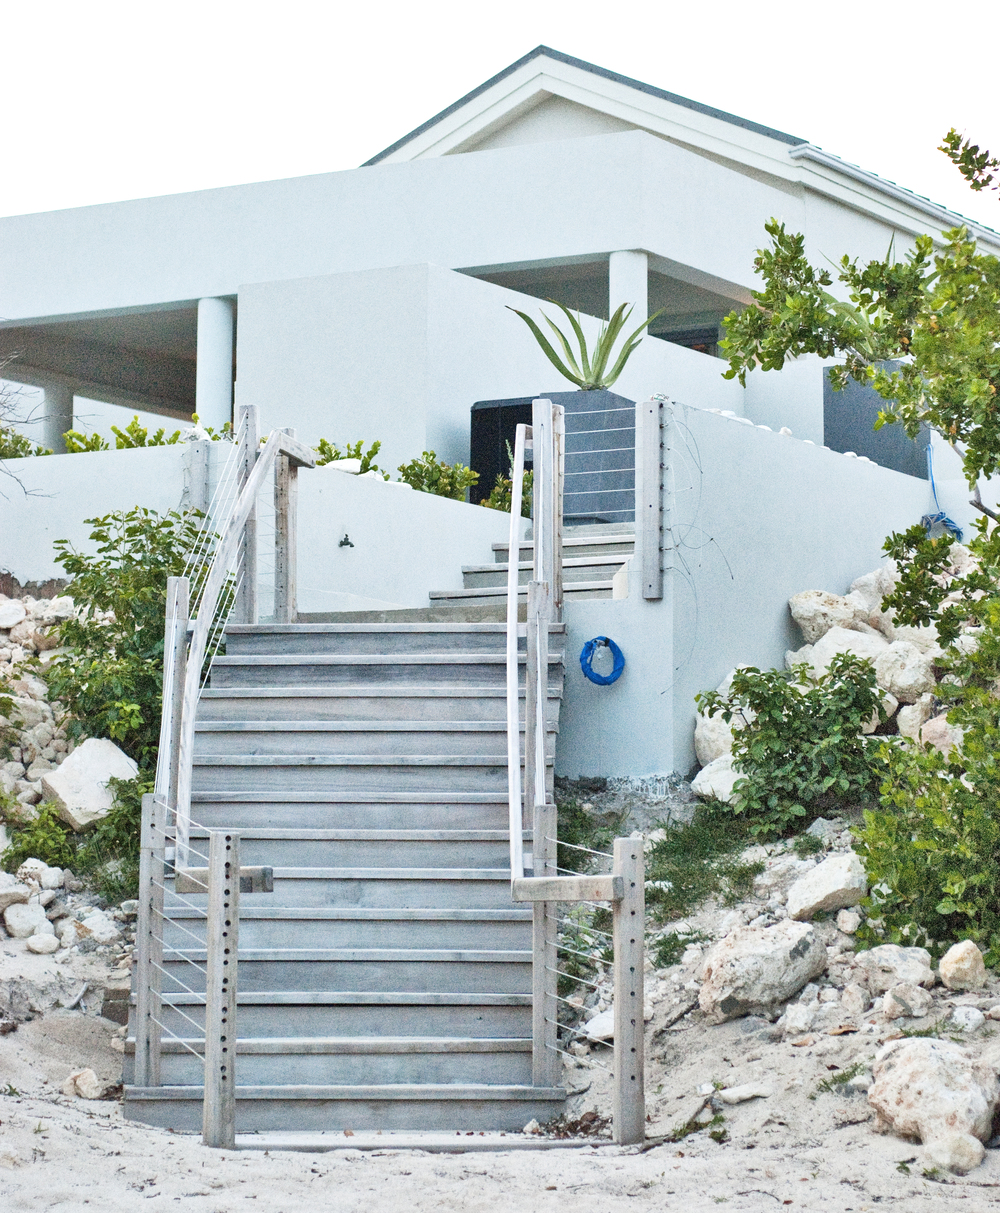 Stairway to beach from villas